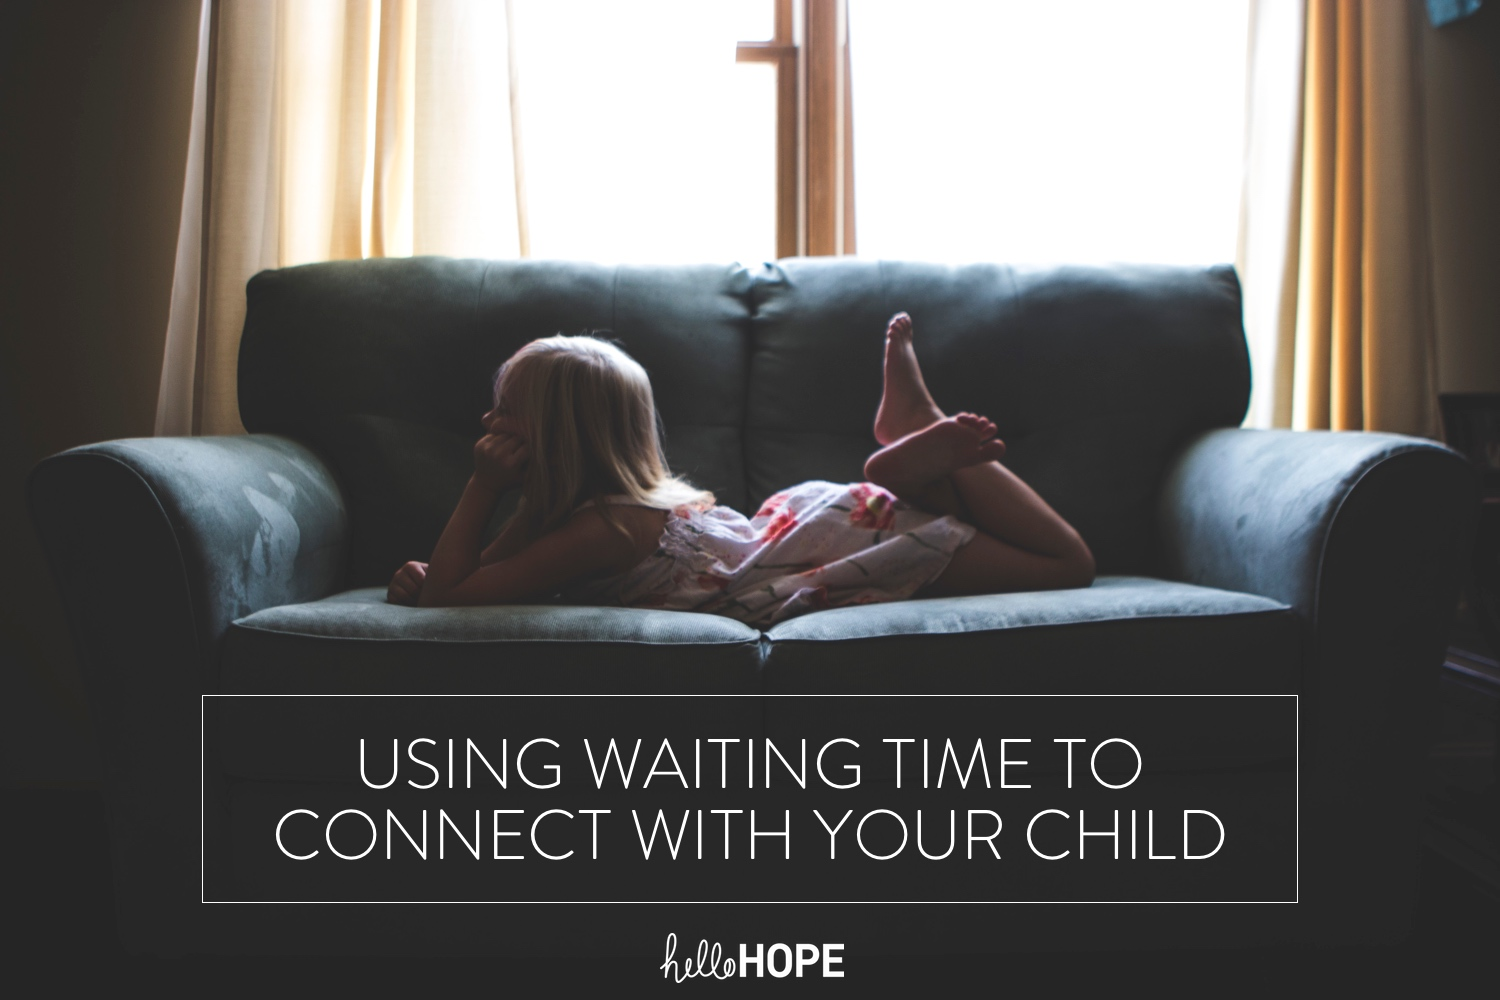 Child On Couch Waiting | Using Waiting Time to Connect with Your Child | helloHOPE Resource